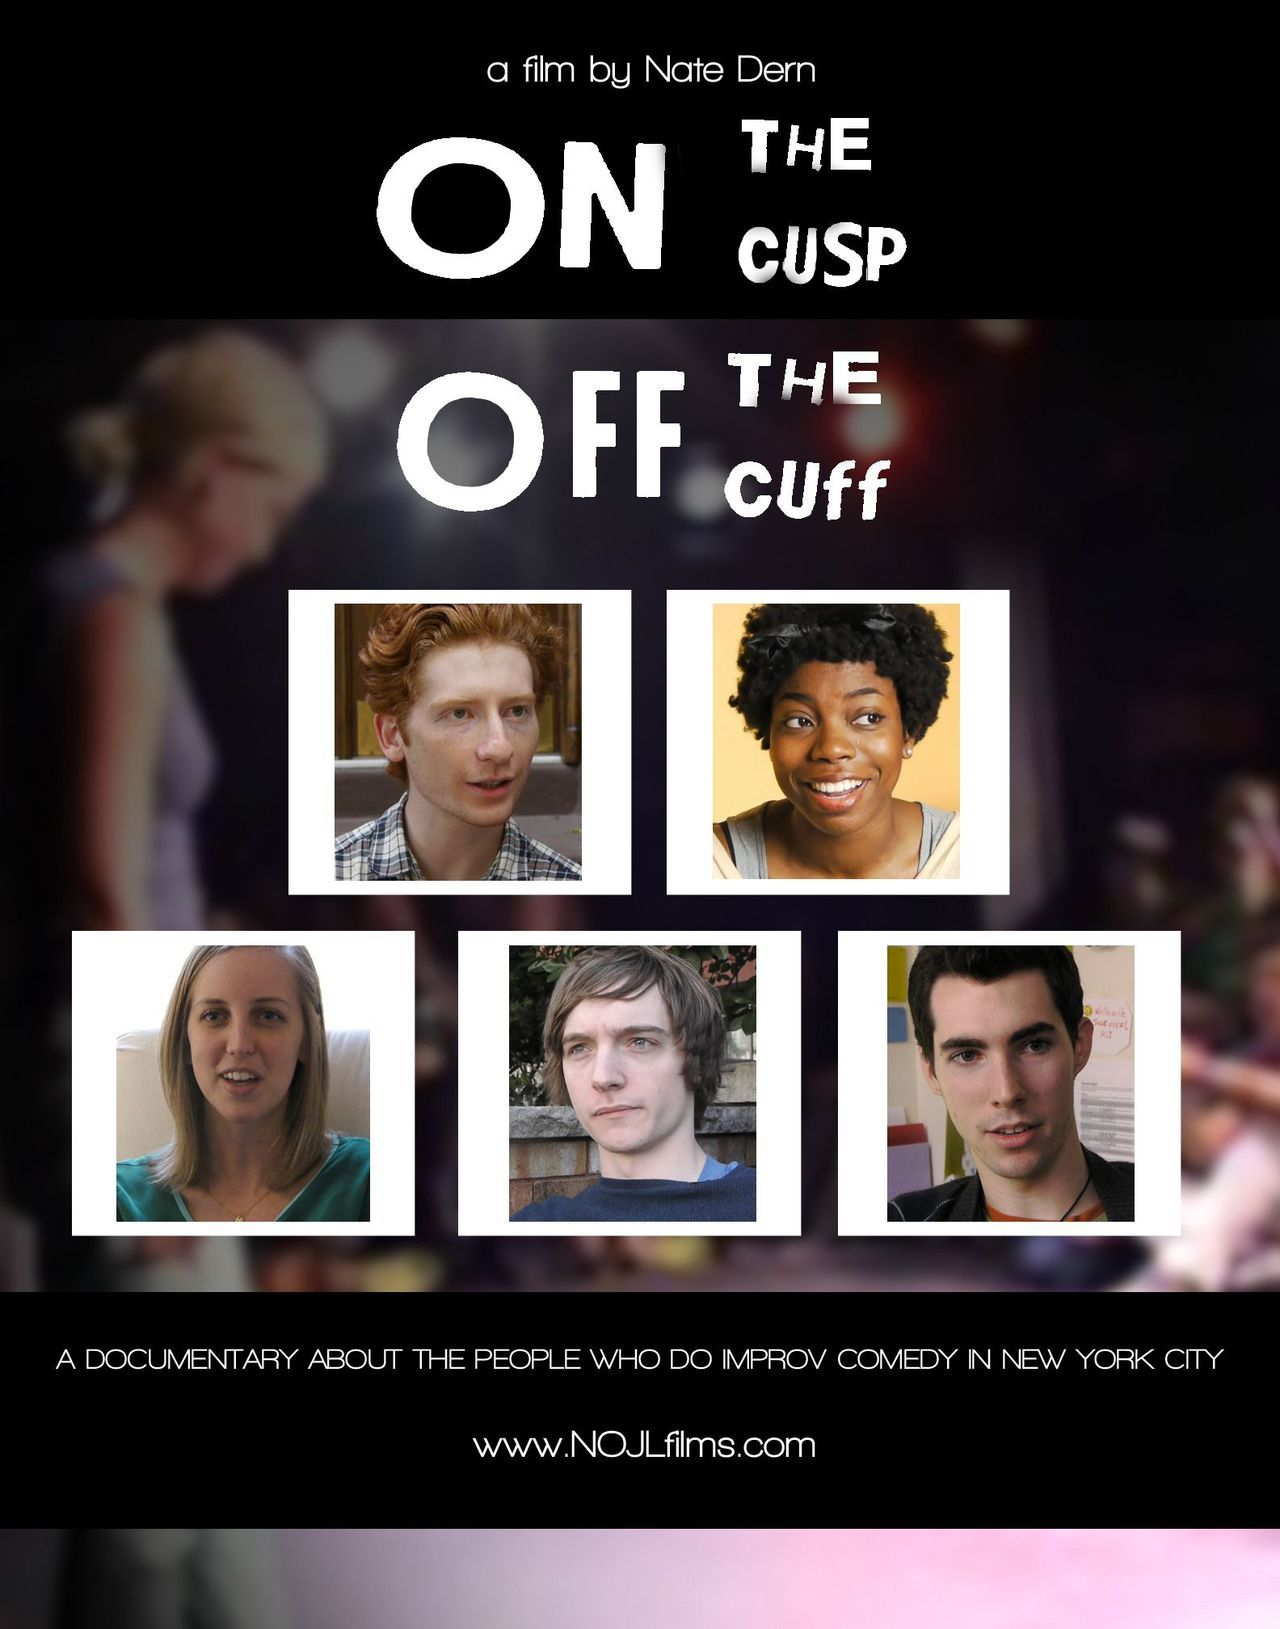 Special preview screening of On The Cusp, Off The Cuff this Wednesday 6/27 at 6pm at UCBeast (Avenue A and 3rd Street) - part of the Del Close Marathon festivities.  Make reservations here.  OTCOTC  is still a work in progress, so if you're in NYC and able to make it I'd appreciate any feedback or thoughts.